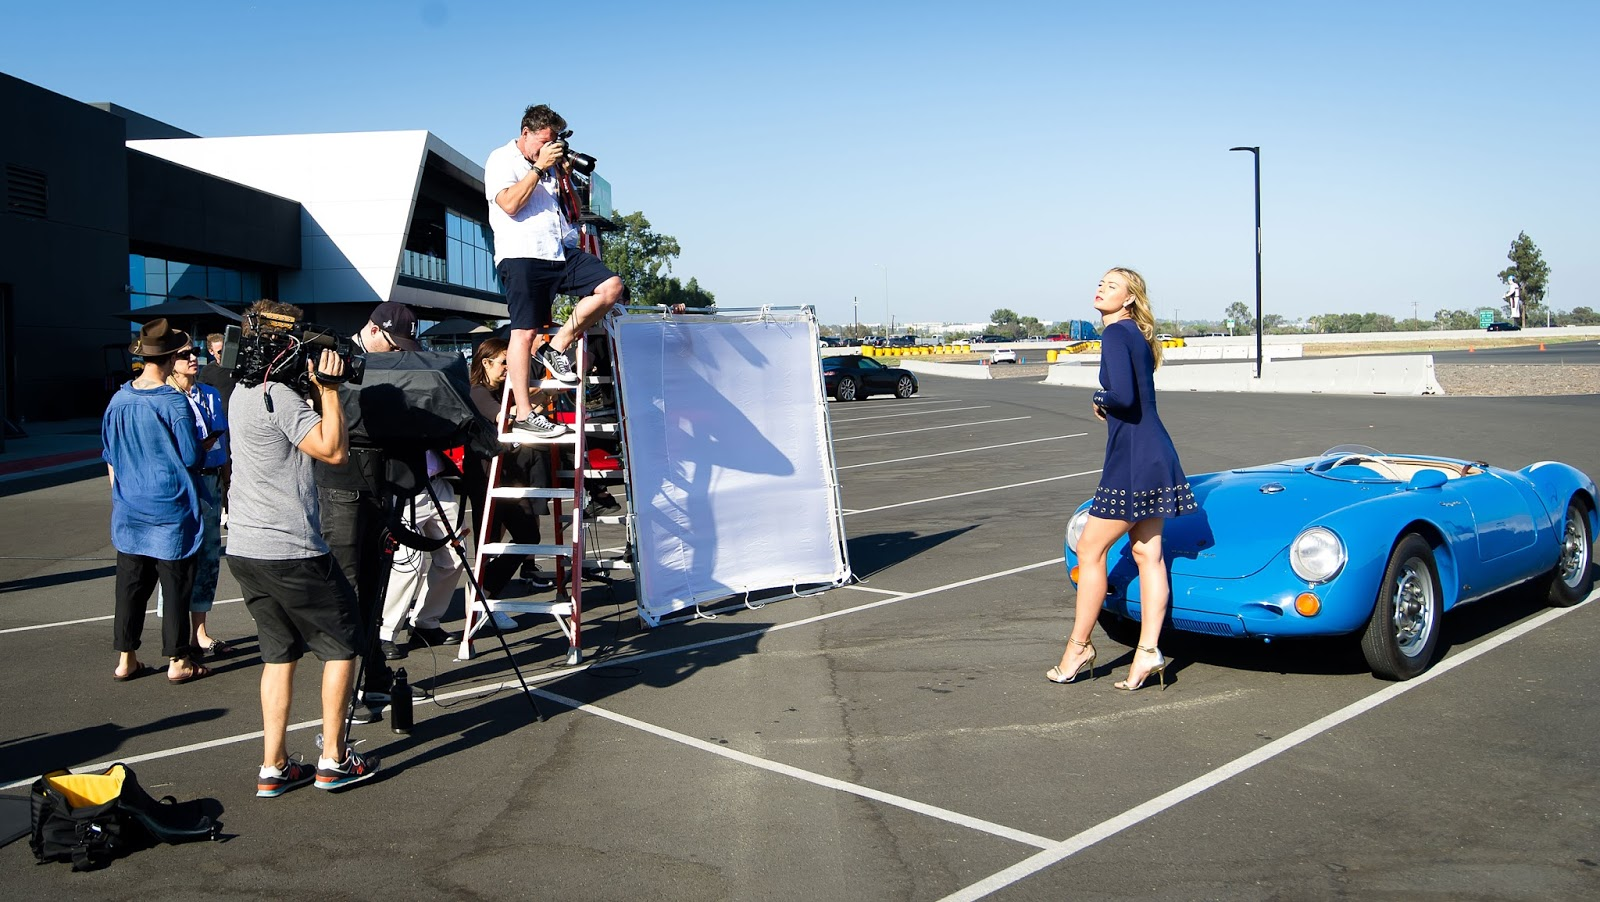 Photoshoot with Porsche brand ambassador Maria Sharapova